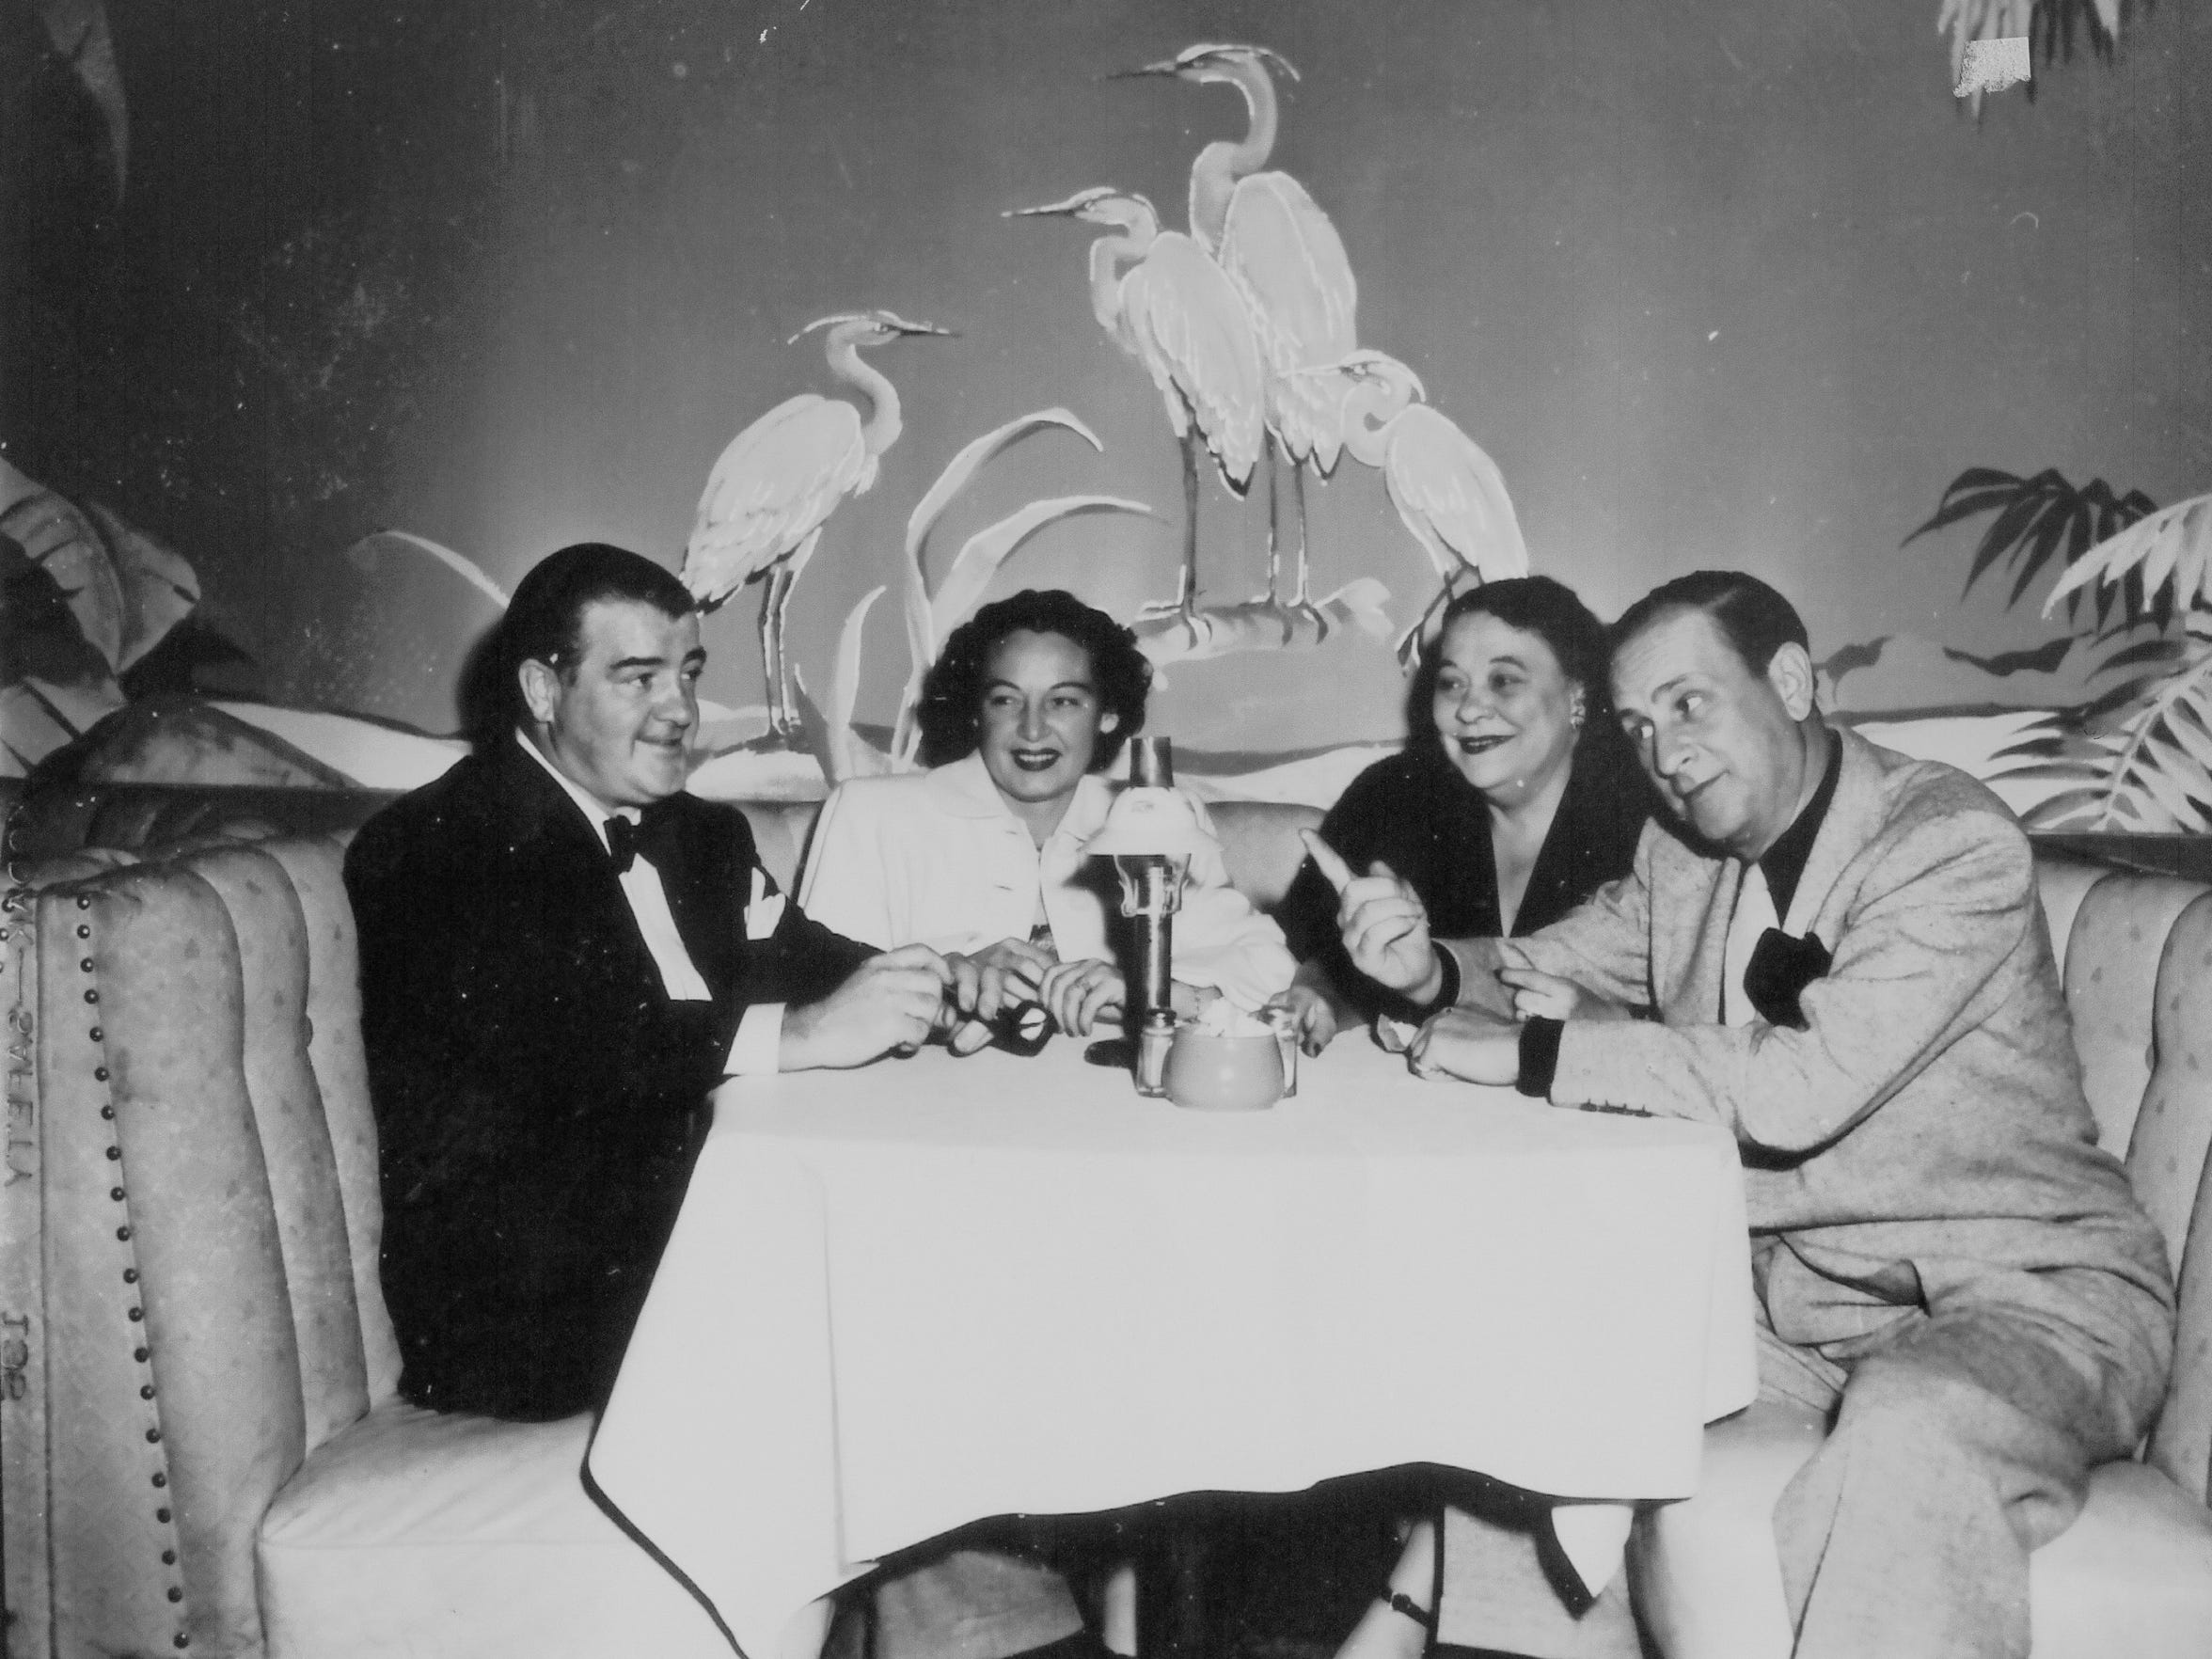 Lou Costello (far left) and Bud Abbott (far left) at Chi Chi.